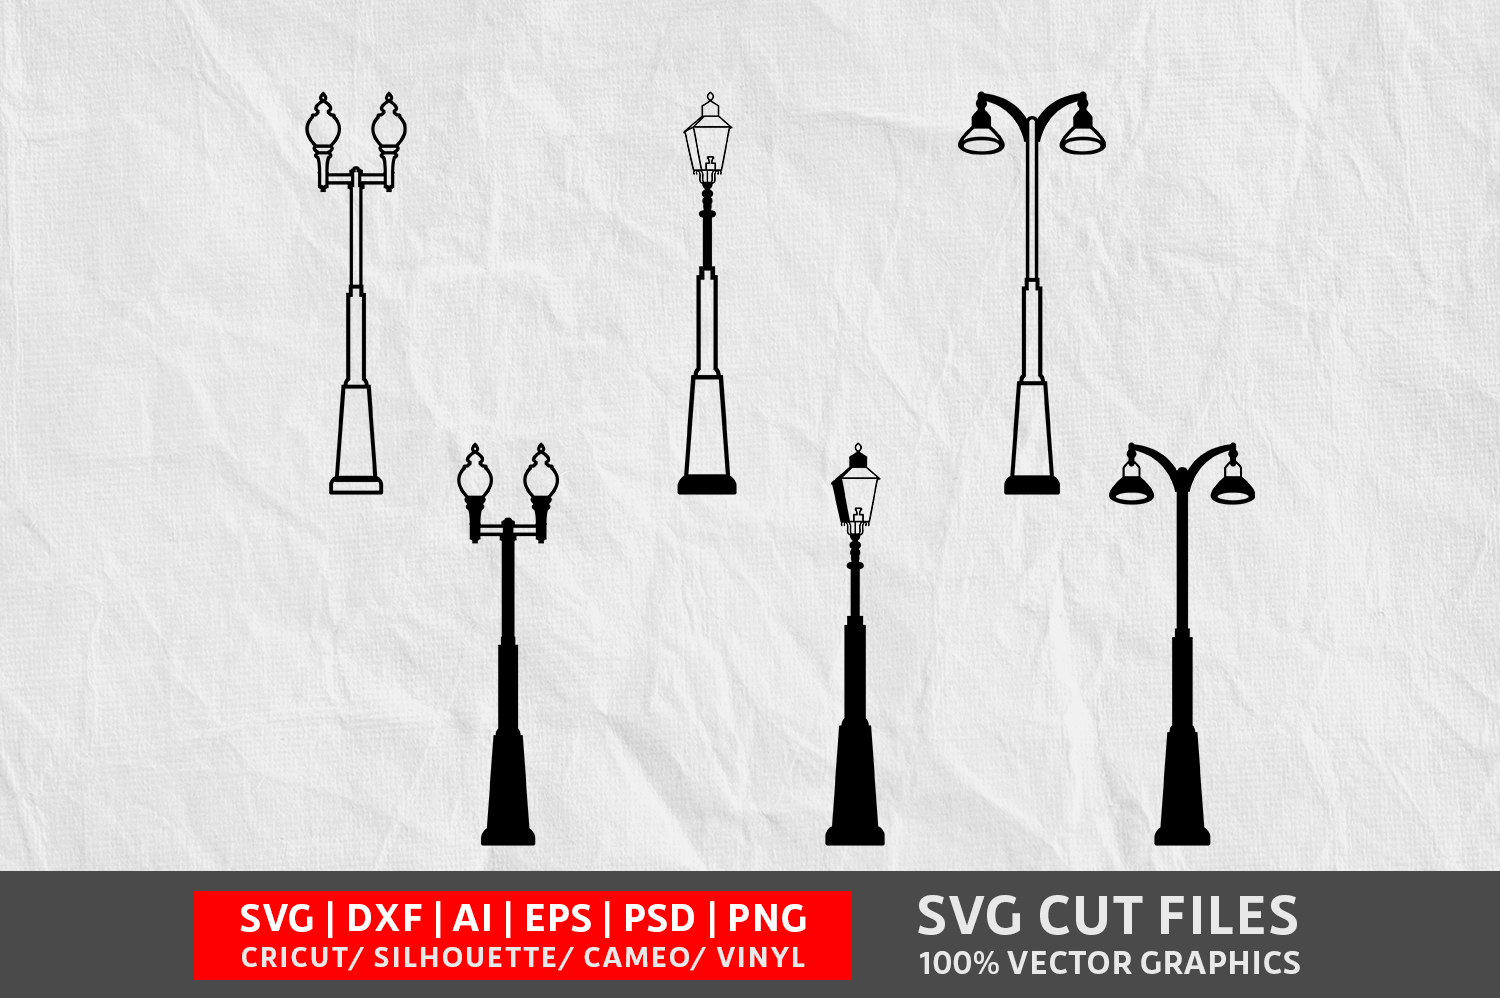 Download Free Street Lights Image Graphic By Design Palace Creative Fabrica for Cricut Explore, Silhouette and other cutting machines.